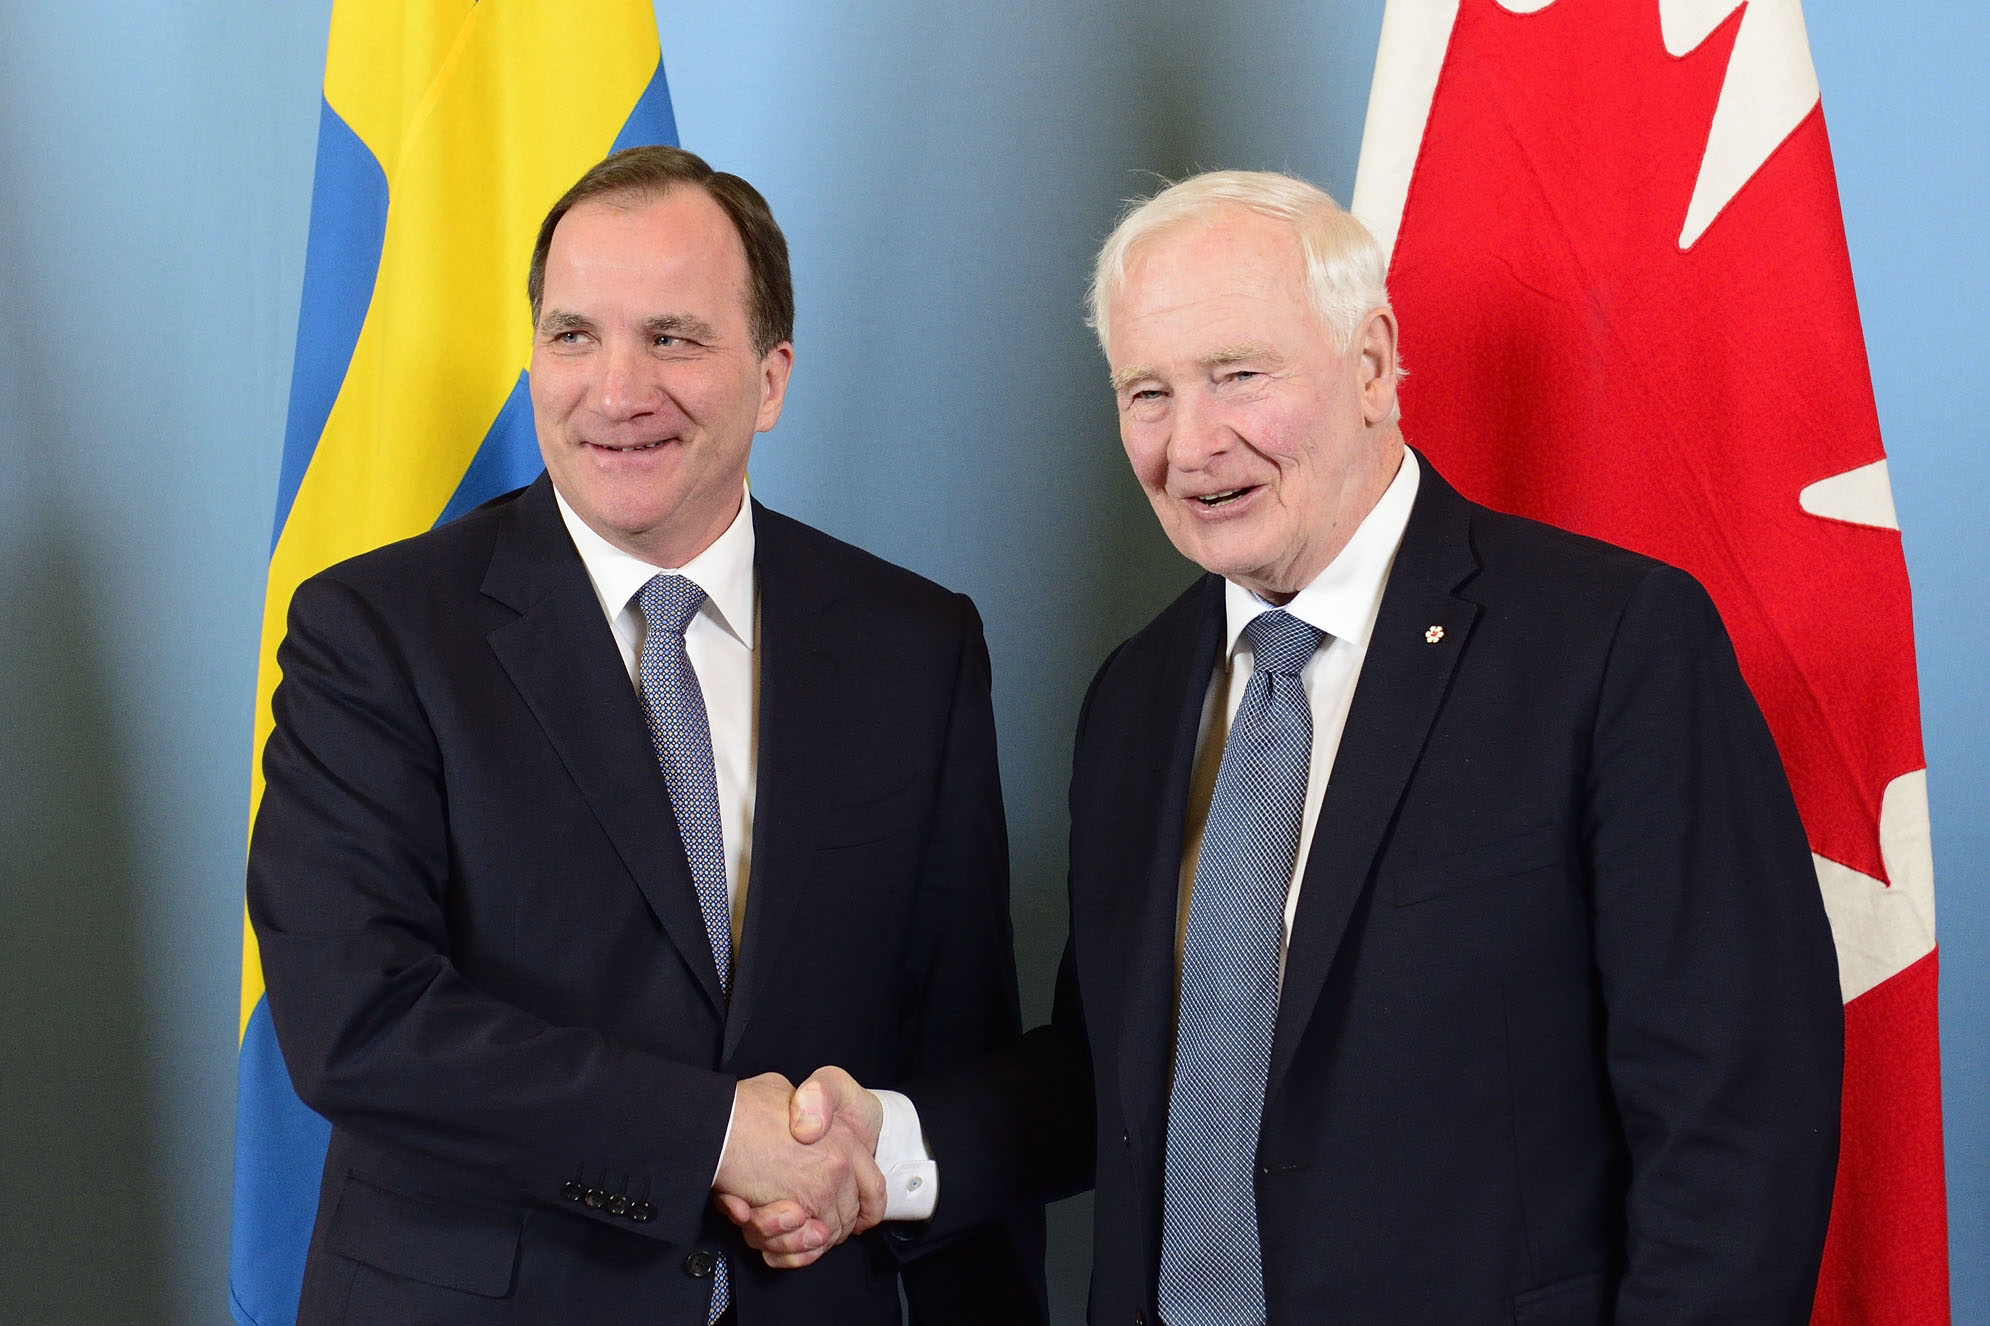 Later, His Excellency met with Mr. Stefan Löfven, Prime Minister of the Kingdom of Sweden, to discuss the relationship between Canada and Sweden.